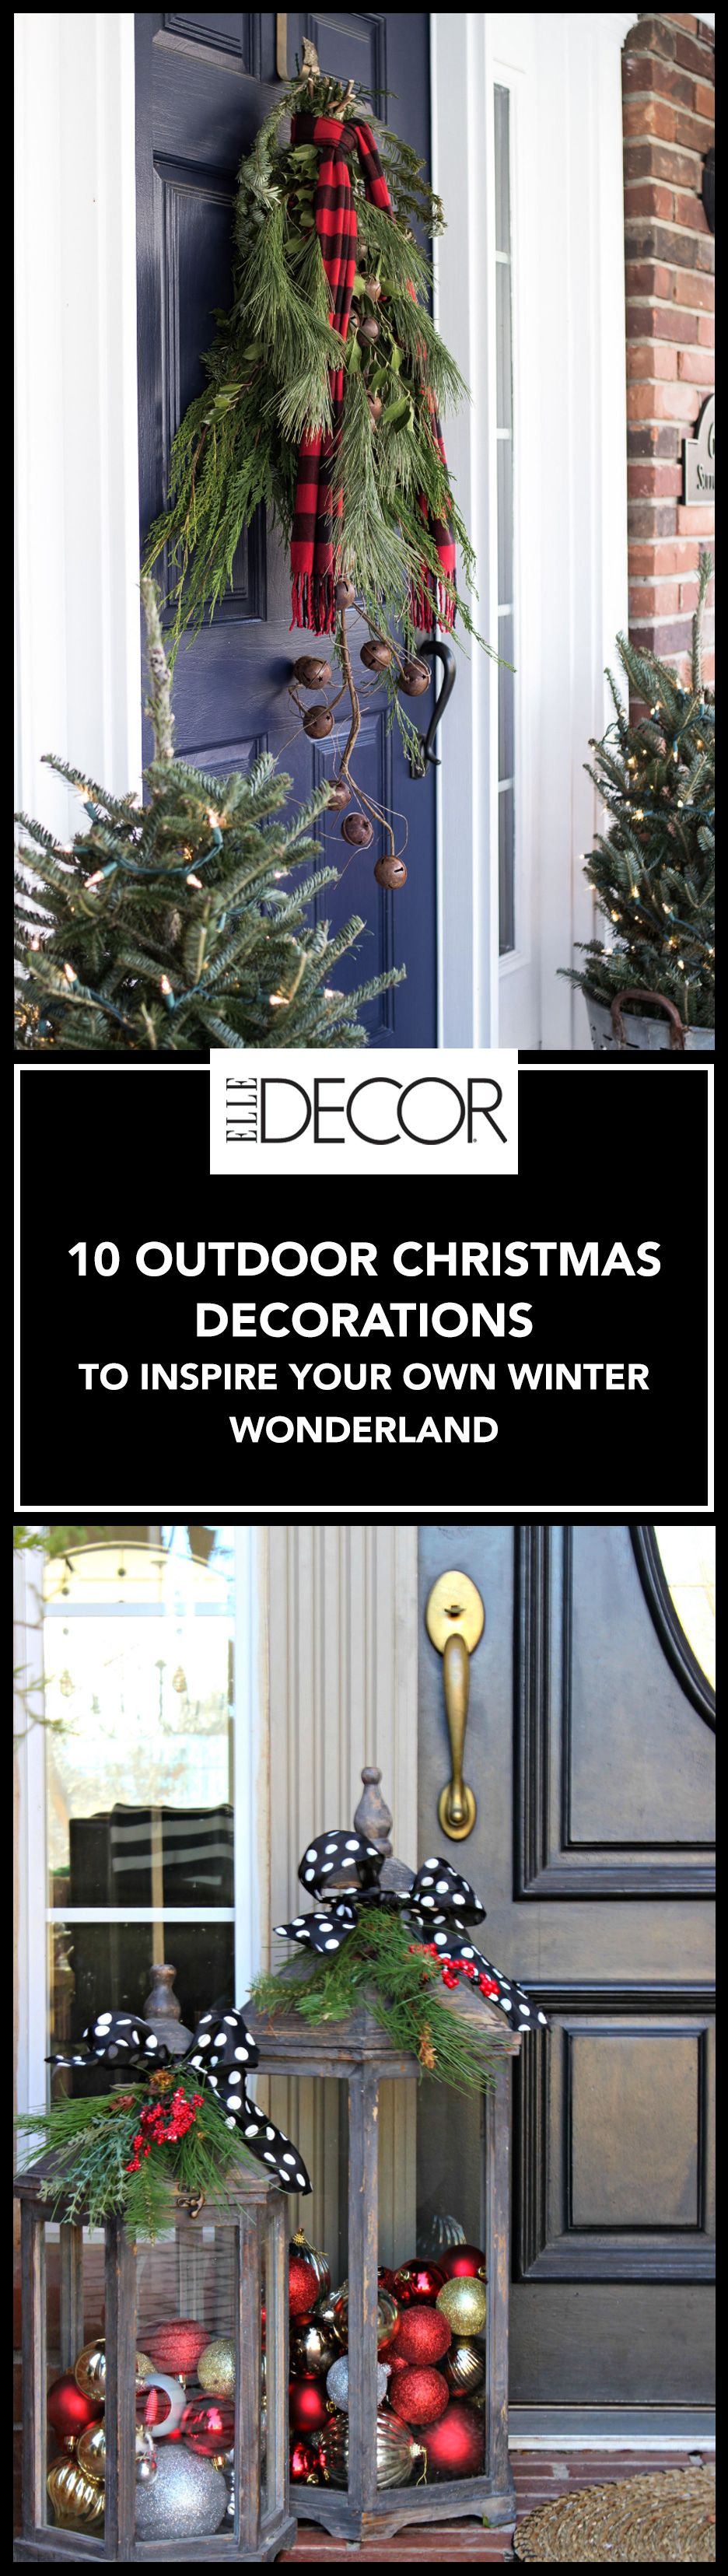 Christmas outdoor window decoration ideas - 13 Outdoor Christmas Decoration Ideas Stylish Outside Christmas Decorating For Your Yard